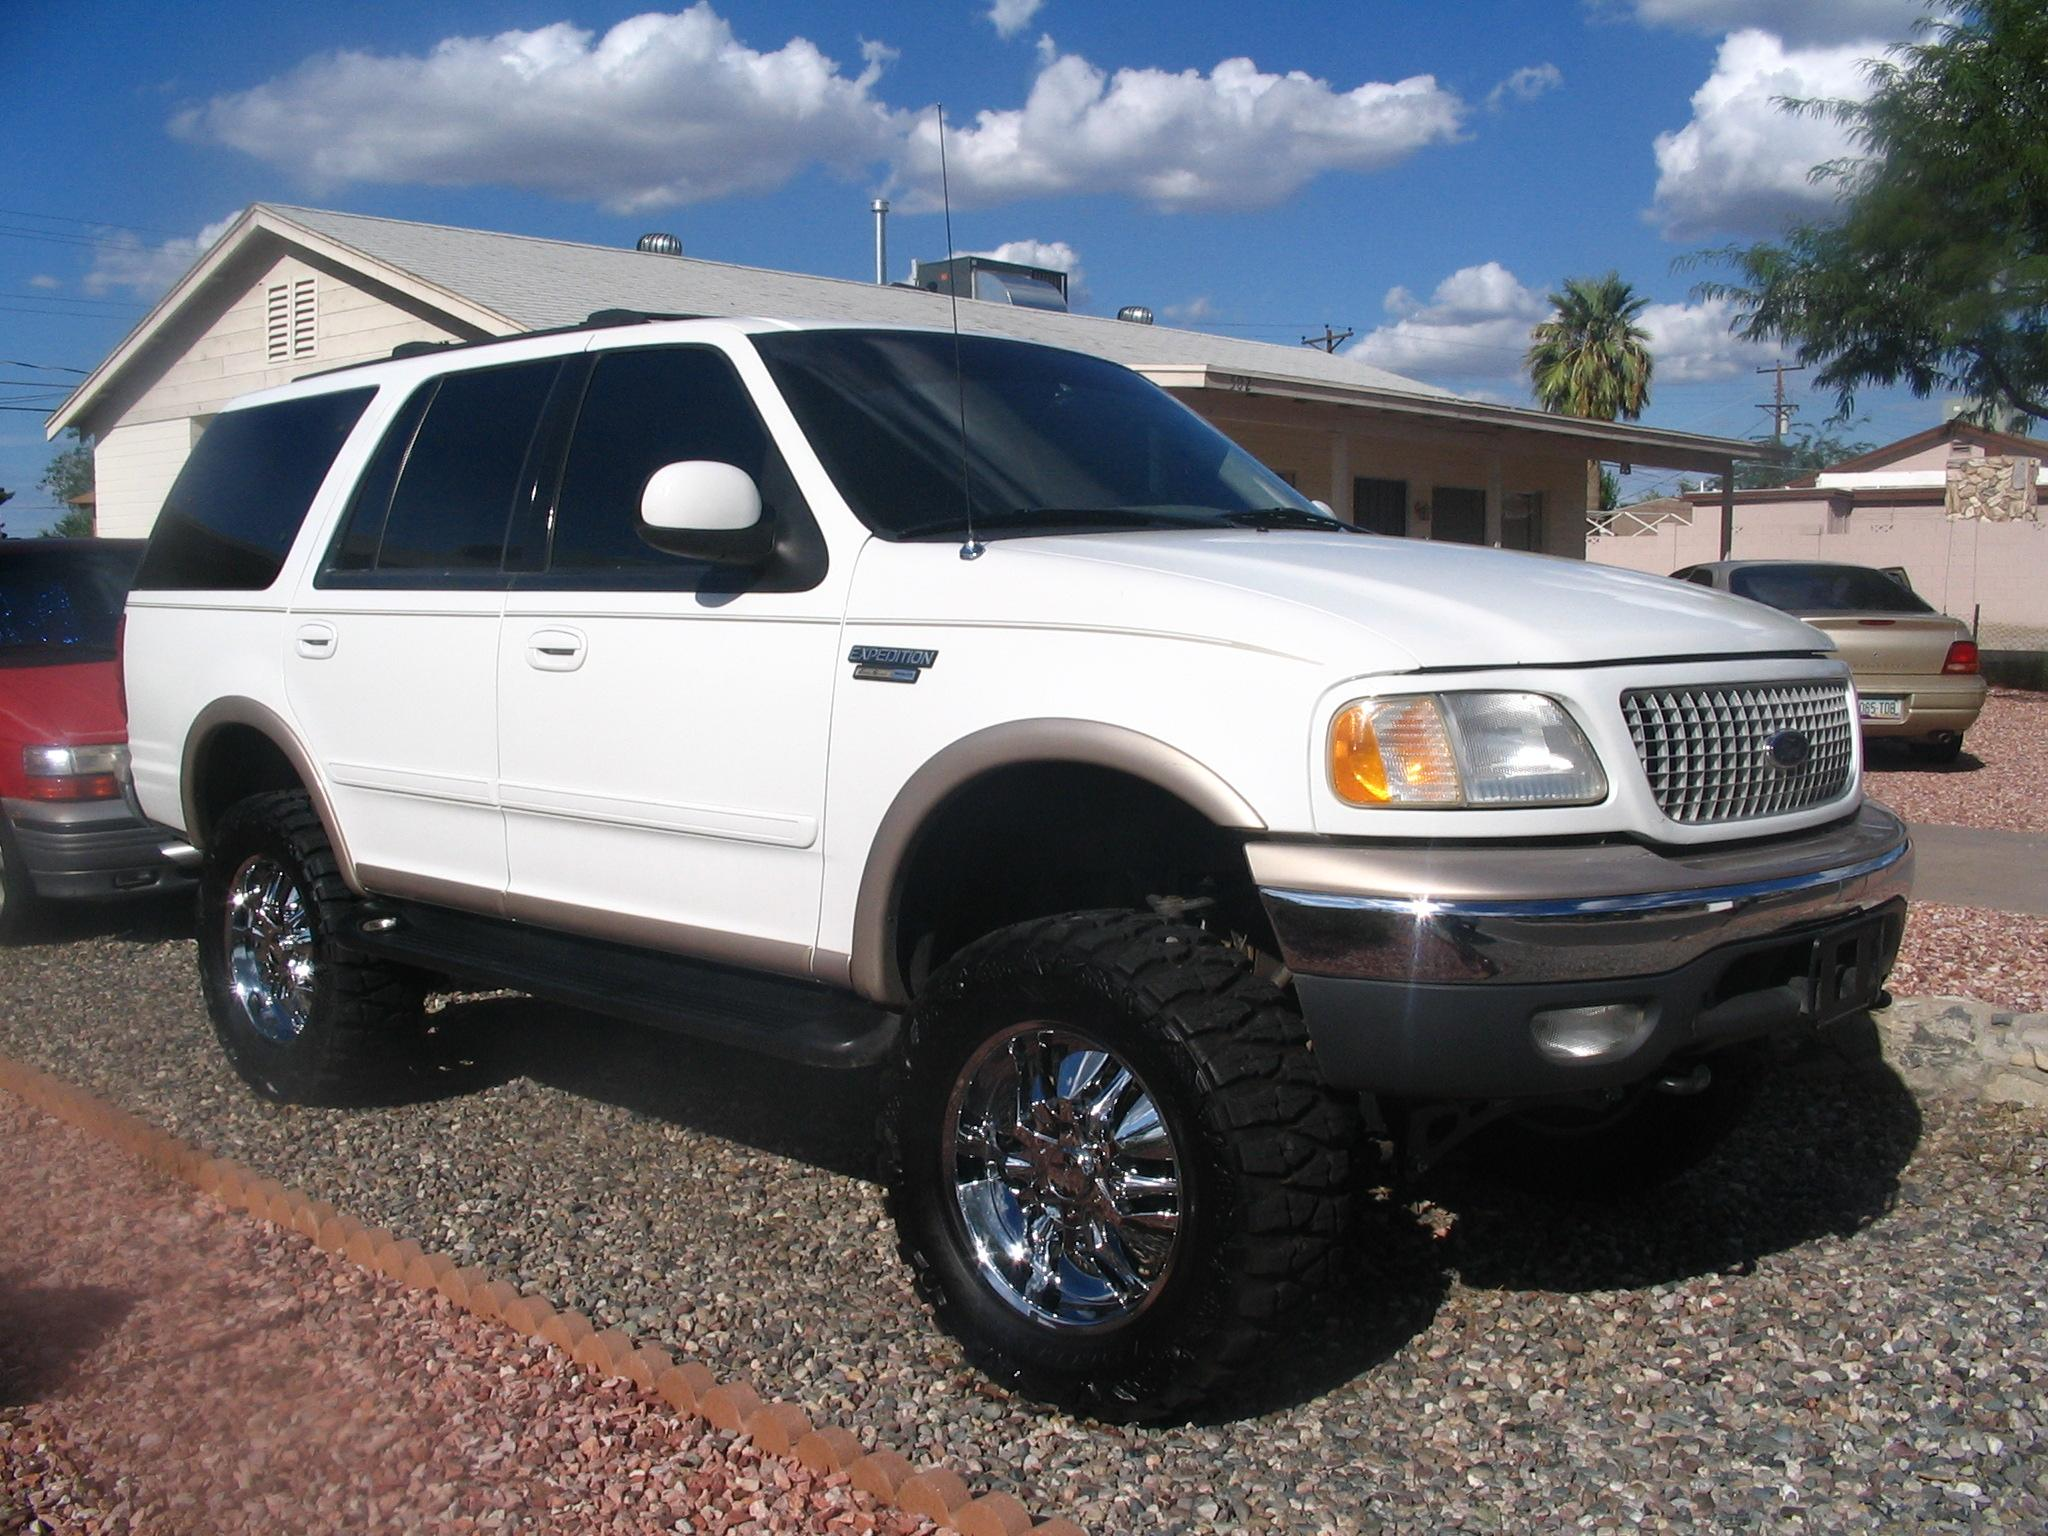 Lifted Ford Expedition >> 2ooToughTim 1999 Ford Expedition Specs, Photos ...